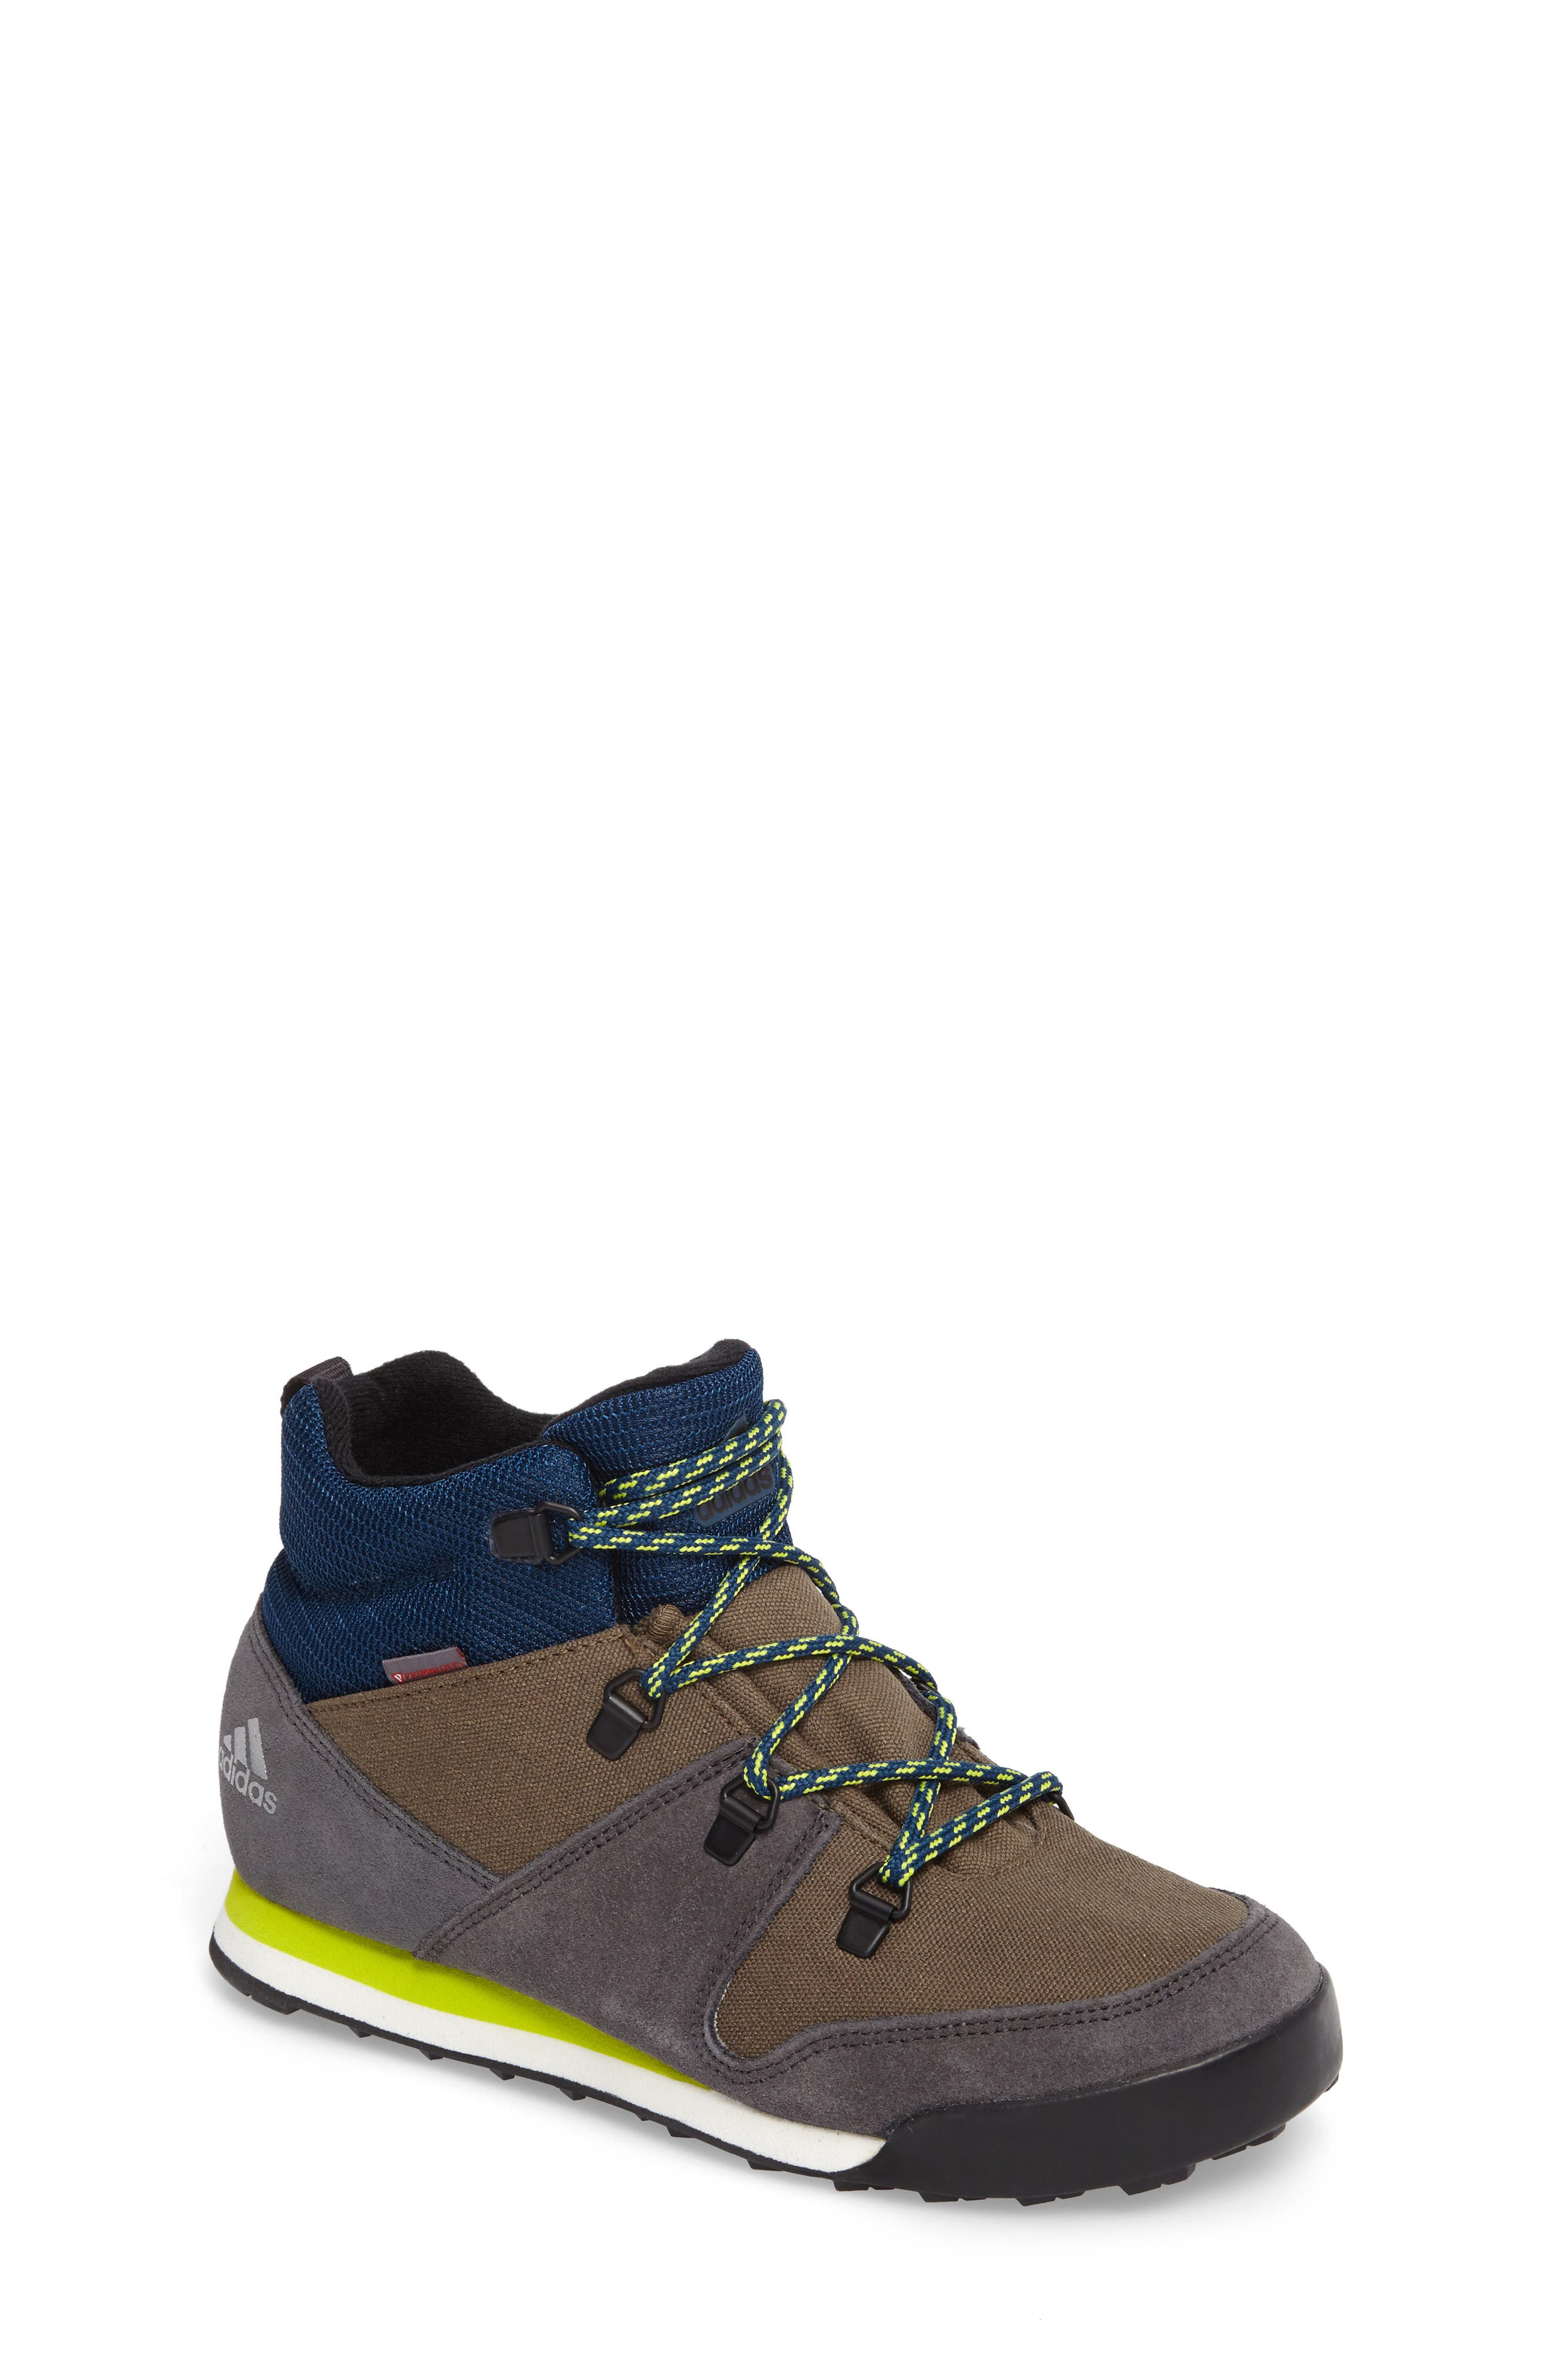 Snowpitch Insulated Sneaker Boot,                         Main,                         color, Cargo/ Black/ Solar Yellow